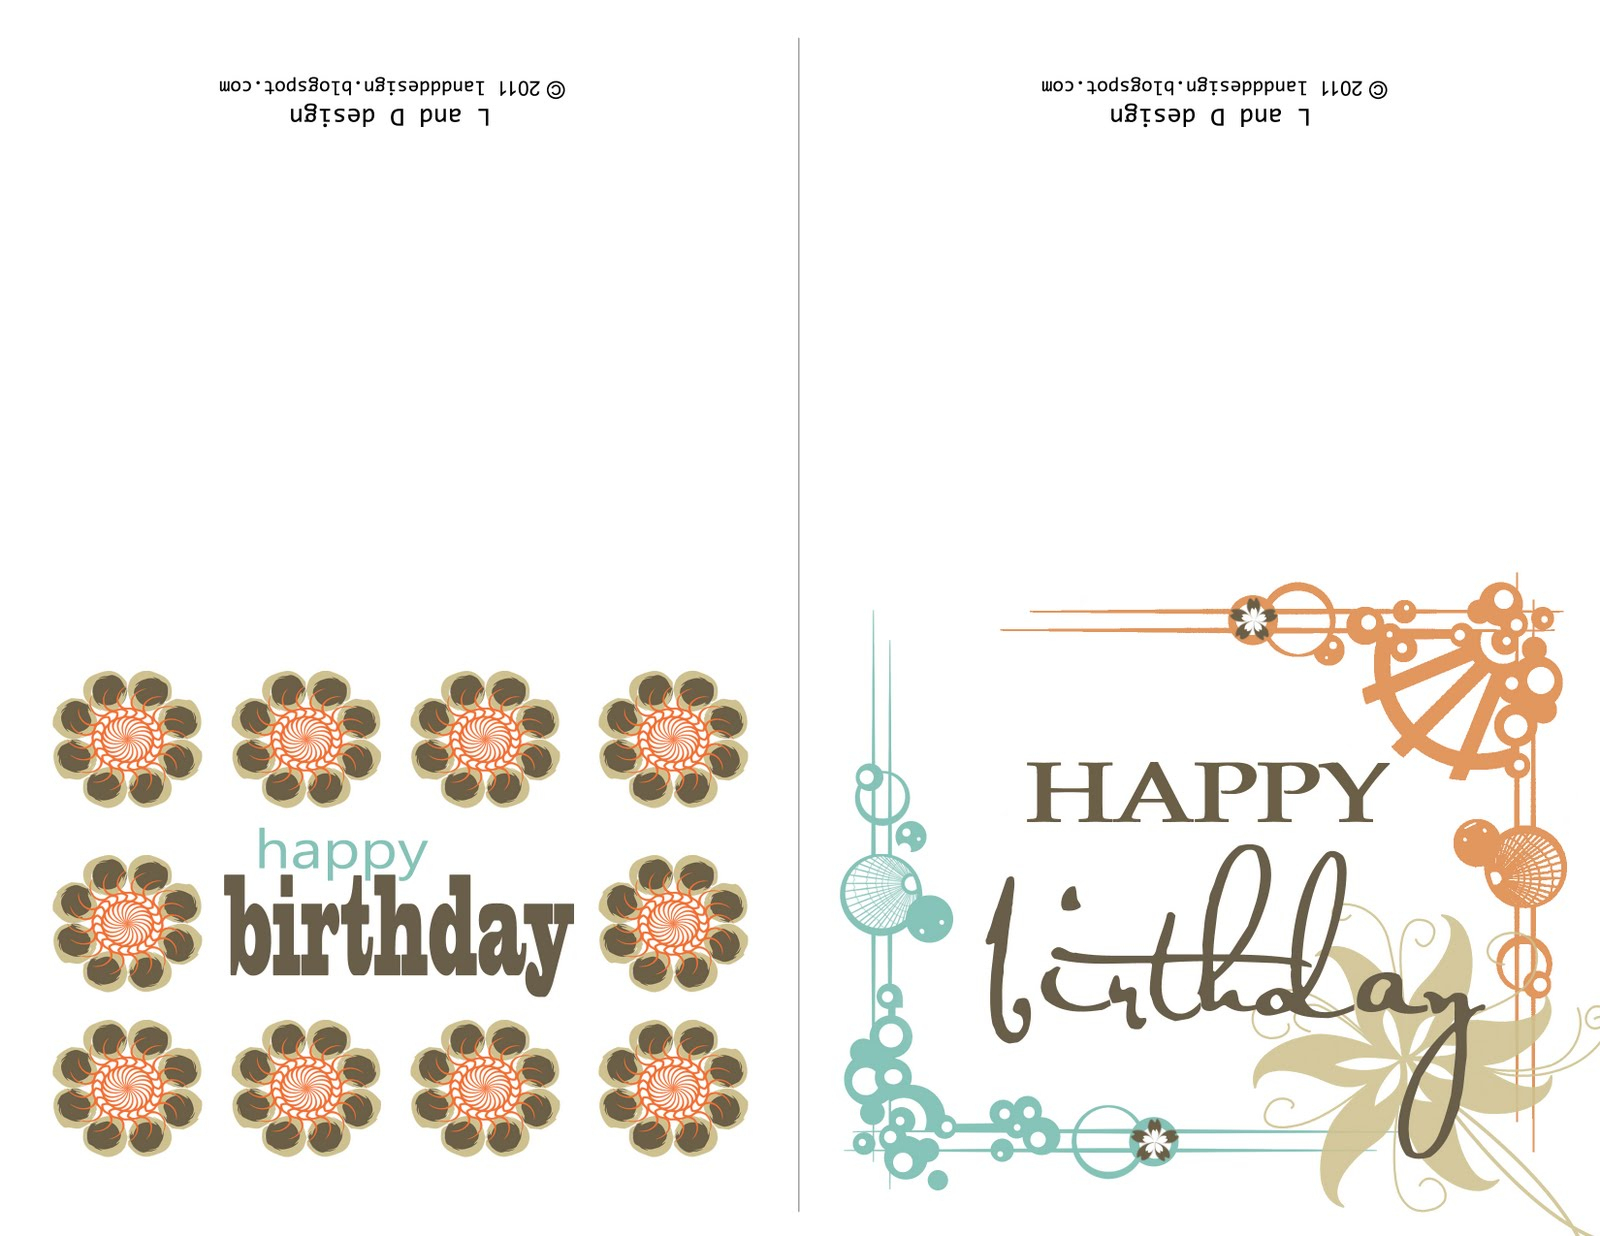 Funny Happy Birthday Cards To Print Out Free Luxury Fresh Happy - Free Online Funny Birthday Cards Printable